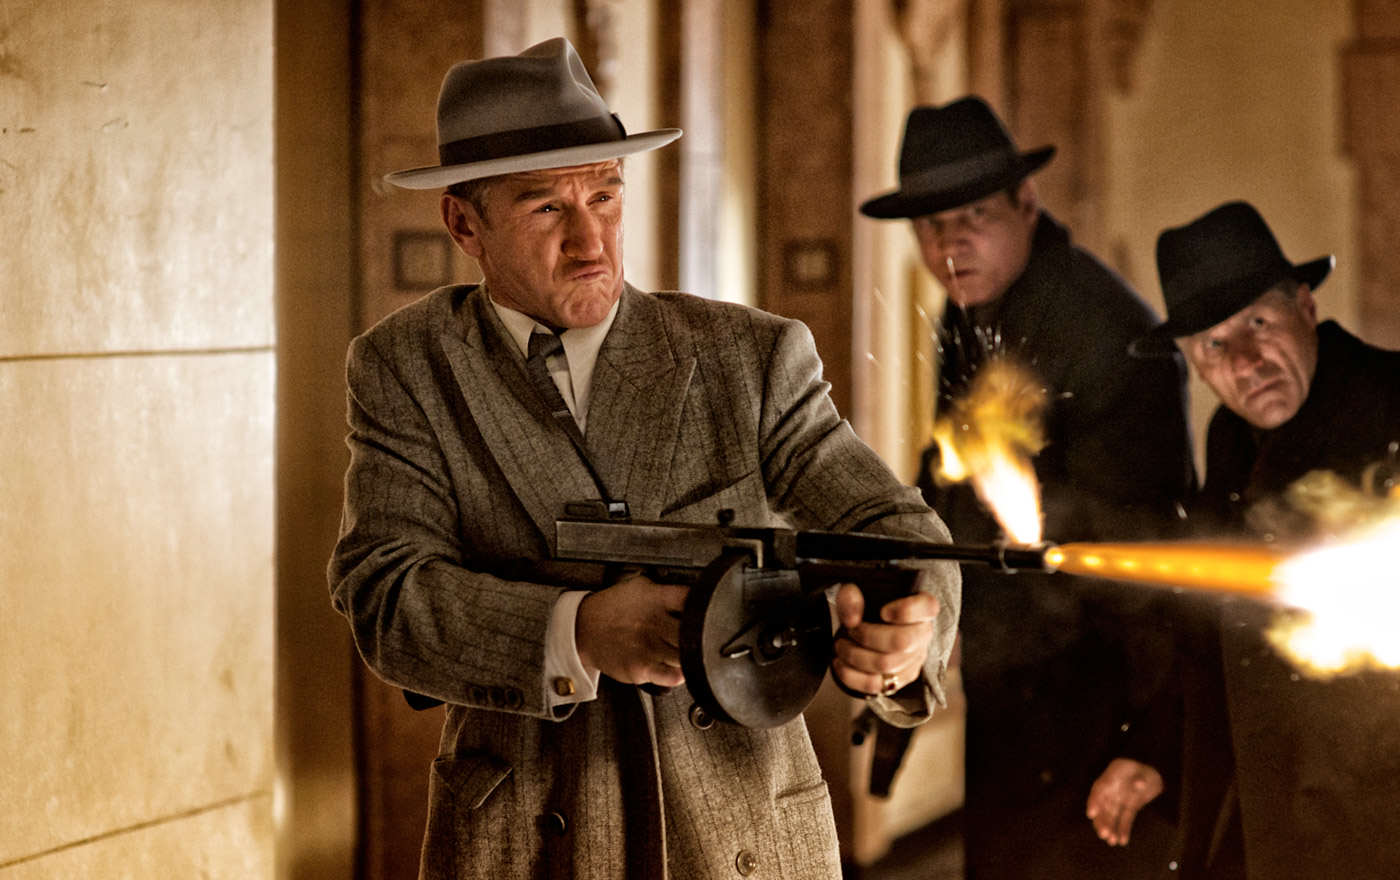 gangster squad movie image sean penn Teens On First Lads Holiday End Up In Middle Of Mafia Gun Battle